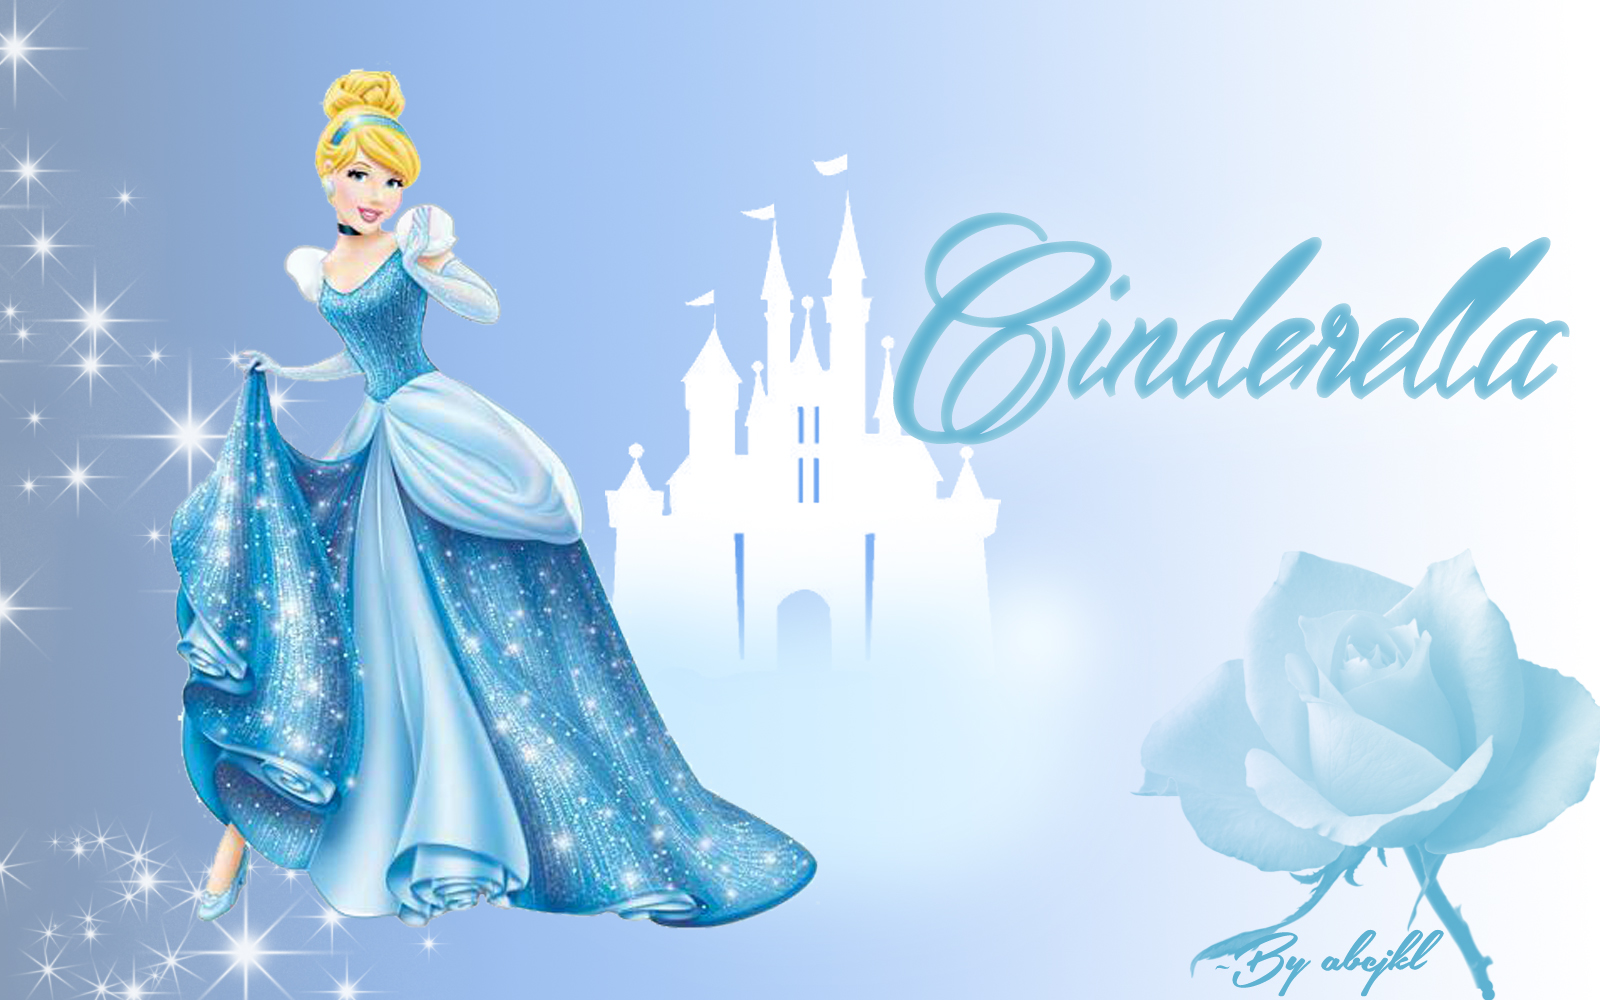 symbolism disney s cinderella Transcript of the glass slipper: a symbol of hope and transformation the earliest known disney's version of cinderella was produced and first opened in 1950.